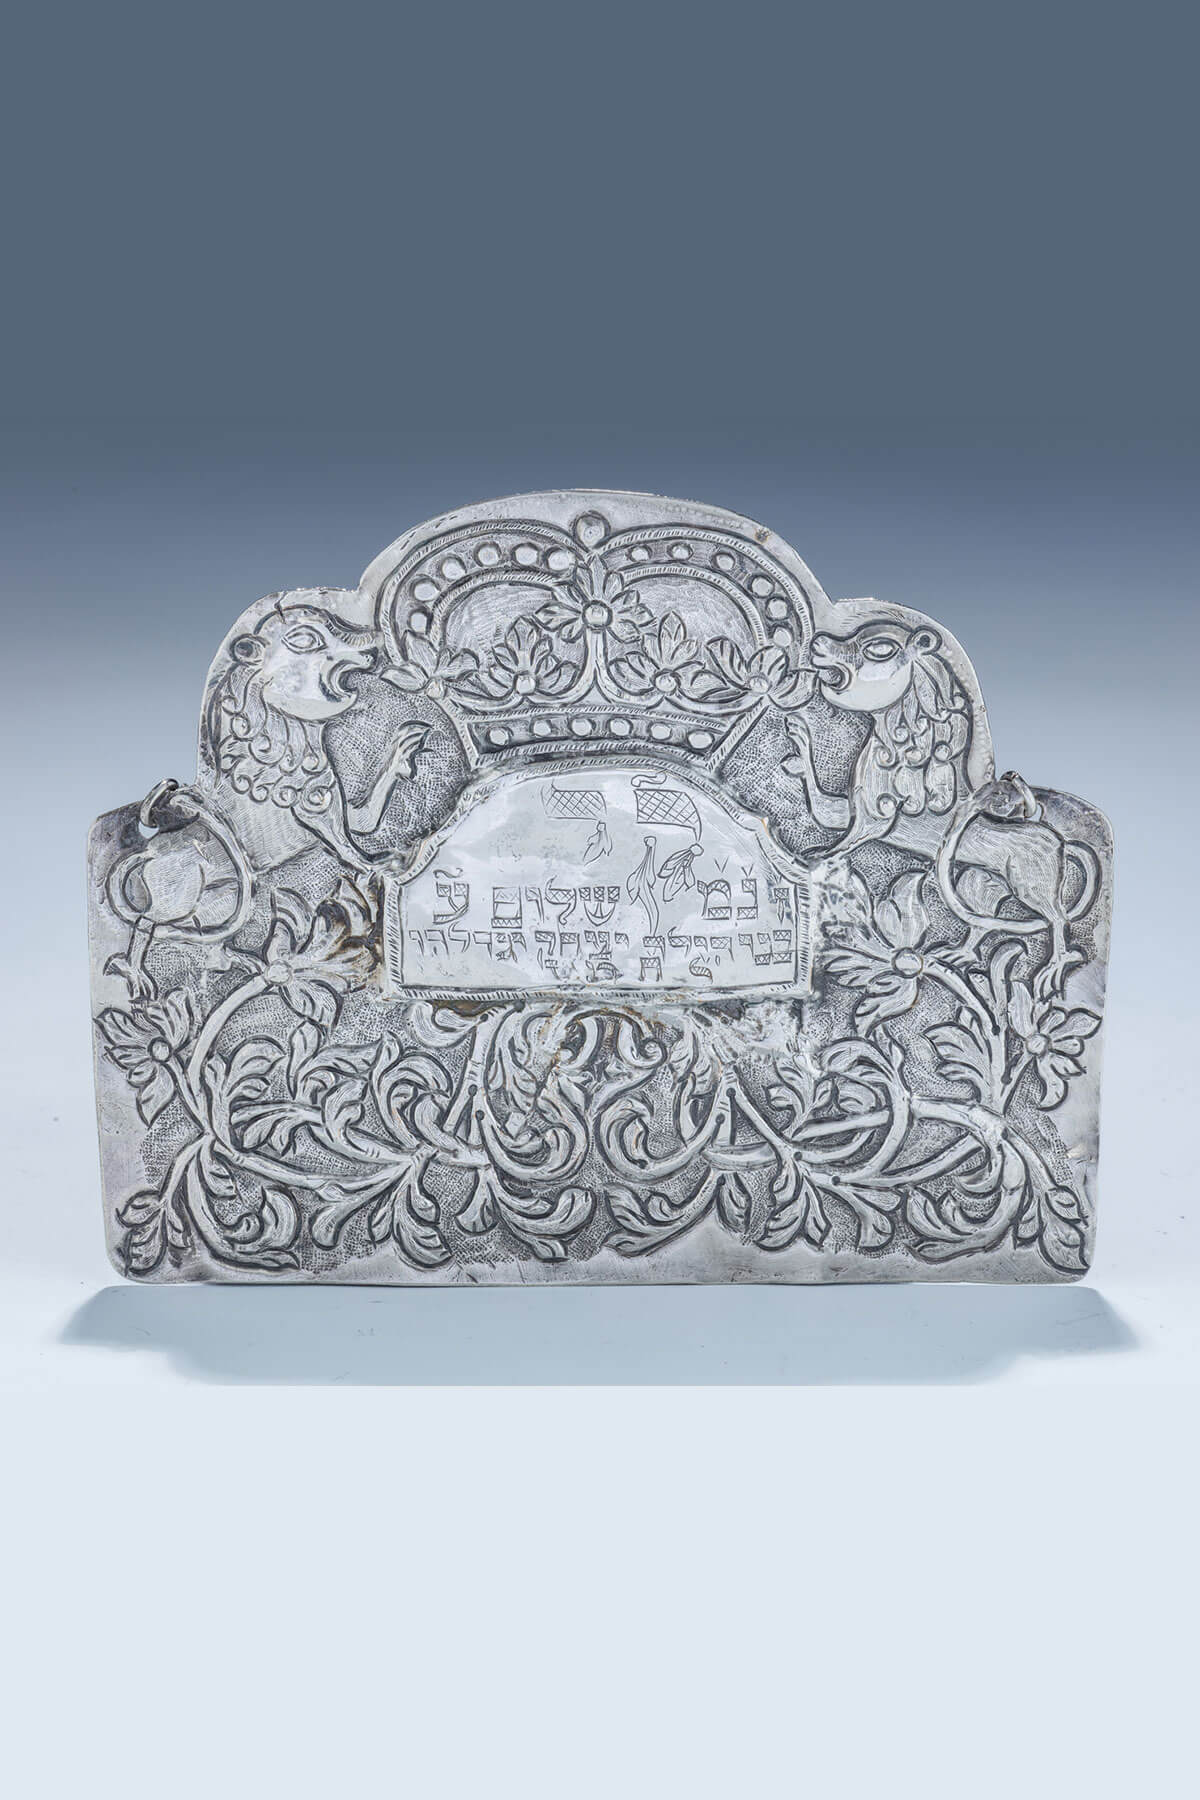 111. An Early Silver Torah Shield